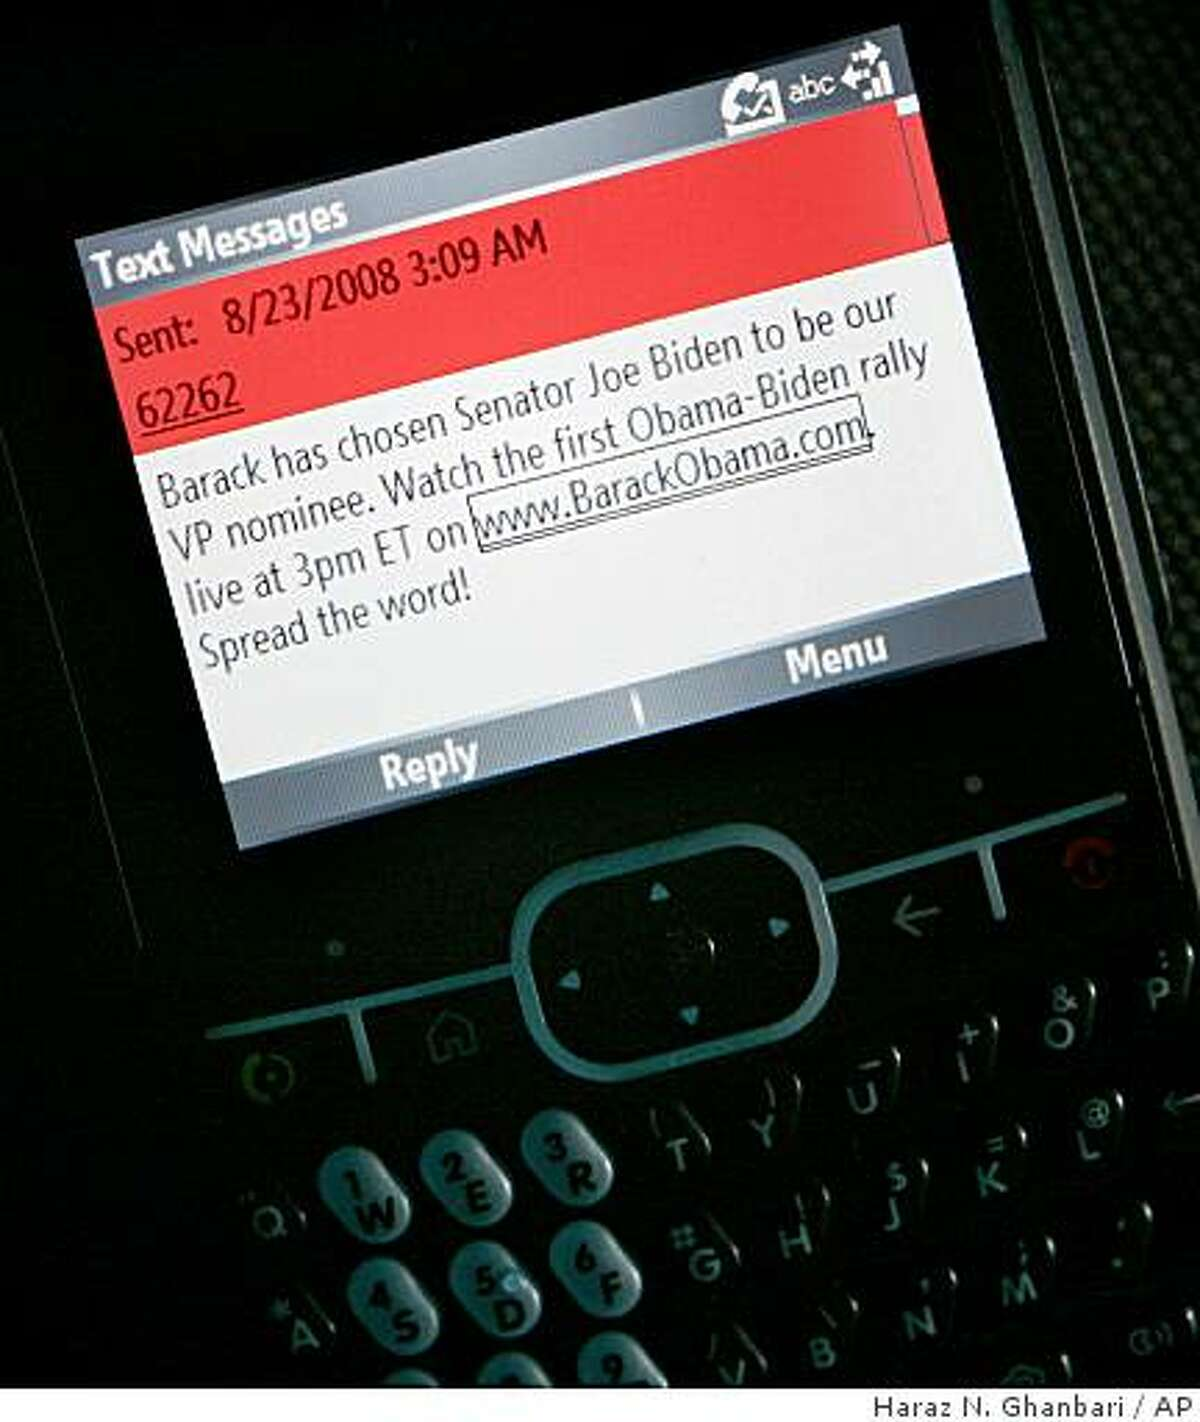 """The text message announcing the choice of Sen. Joe Biden of Delaware as the vice presidential selection for the Democratic party is seen on a communication device, Saturday, Aug. 23, 2008, in Greenville, Del., after it arrived at 3:09 AM. Obama announced the pick on his Web site with a photo of the two men and an appeal for donations. A text message went out shortly afterward that said, """"Barack has chosen Senator Joe Biden to be our VP nominee."""" (AP Photo/Haraz N. Ghanbari)"""